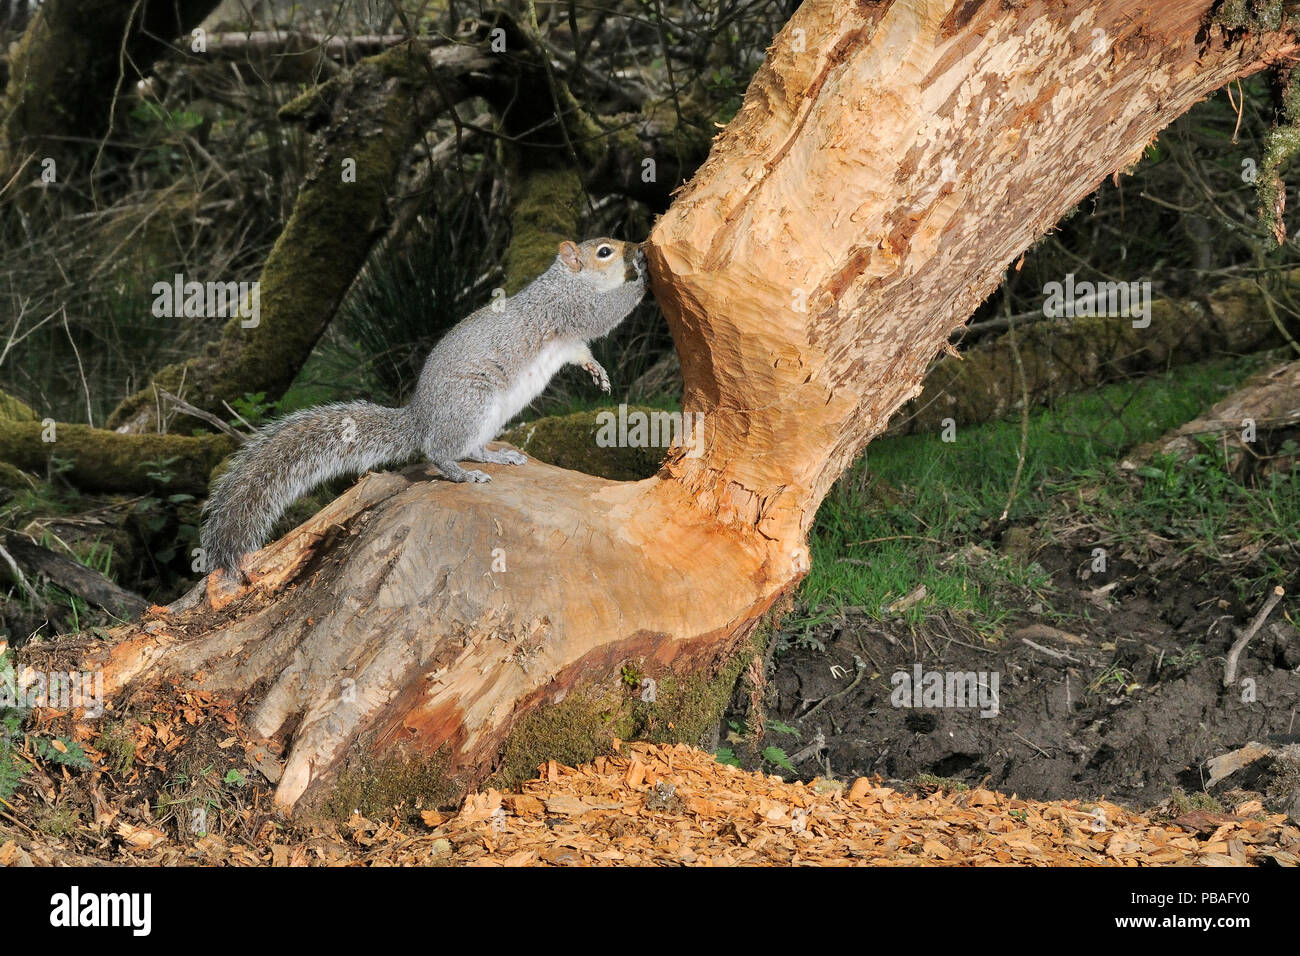 Grey squirrel (Sciurus carolinensis) standing on Willow tree (Salix sp) heavily gnawed by Eurasian beavers (Castor fiber) in a large woodland enclosure at night, Devon Beaver Project, run by Devon Wildlife Trust, Devon, UK, April. Taken by a remote camera trap. - Stock Image